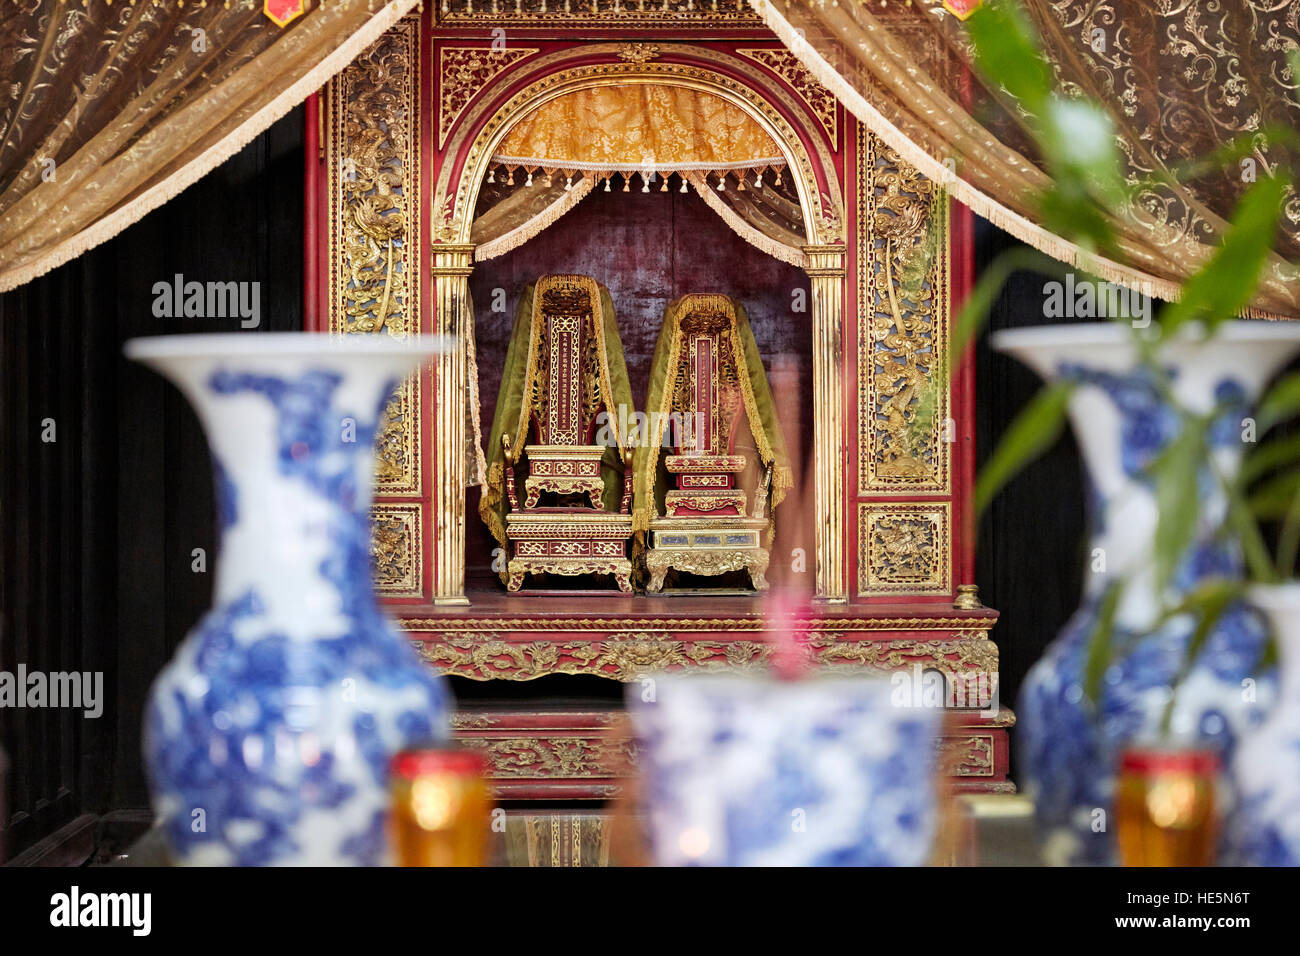 Thrones of the Emperor Tu Duc and his wife, Empress Hoang Le Thien Anh, displayed in Hoa Khiem Temple. Tomb of Tu - Stock Image